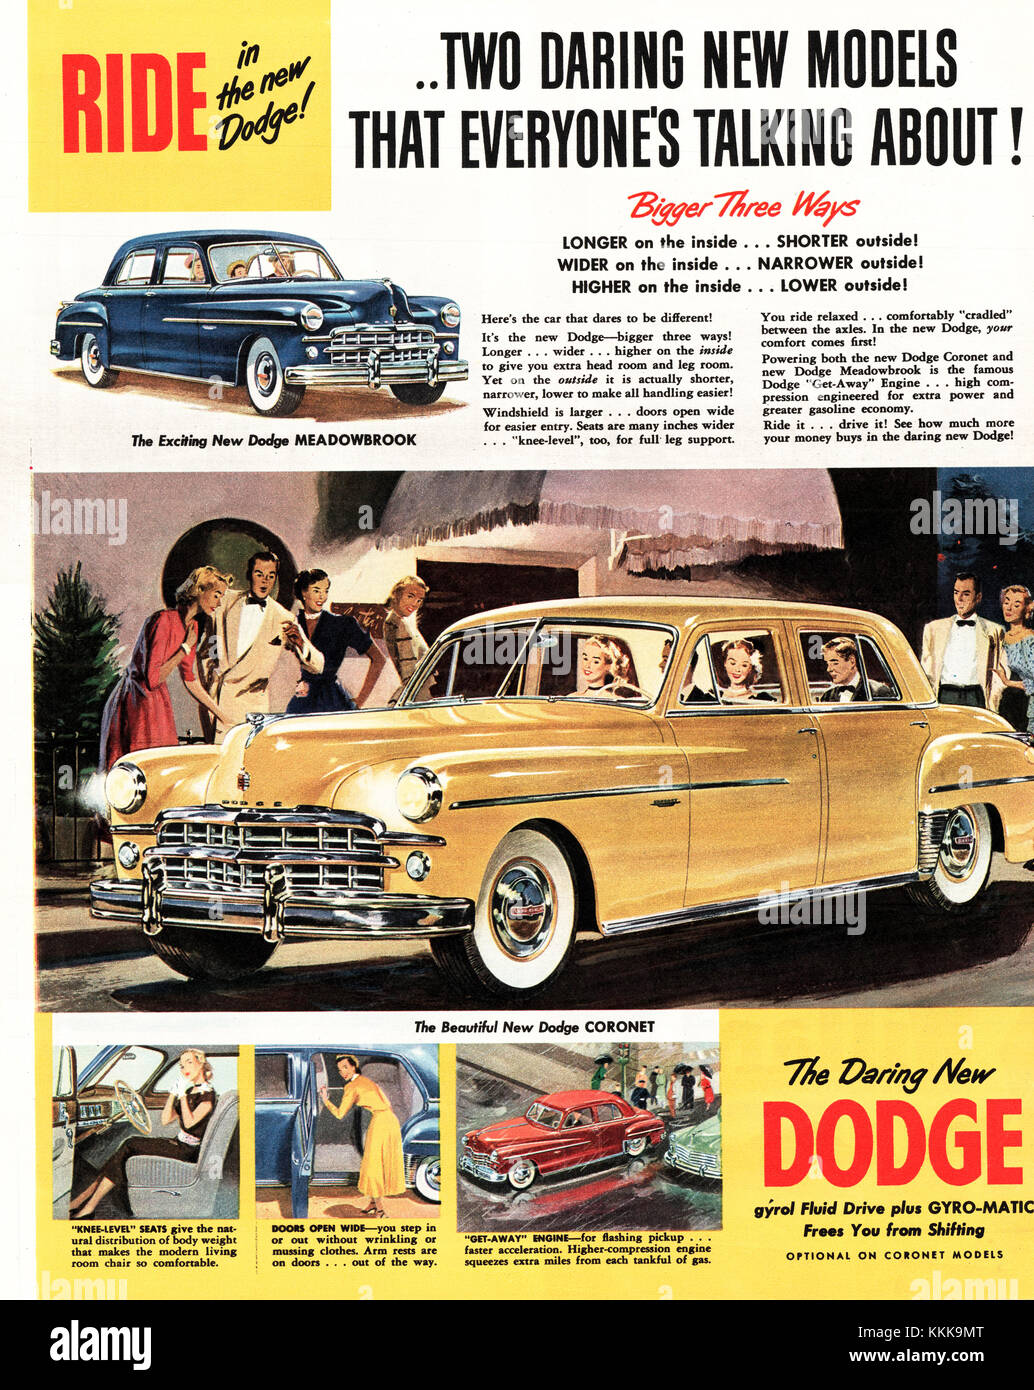 1949 U.S. Magazine Dodge Cars Advert Stock Photo: 166996504 - Alamy